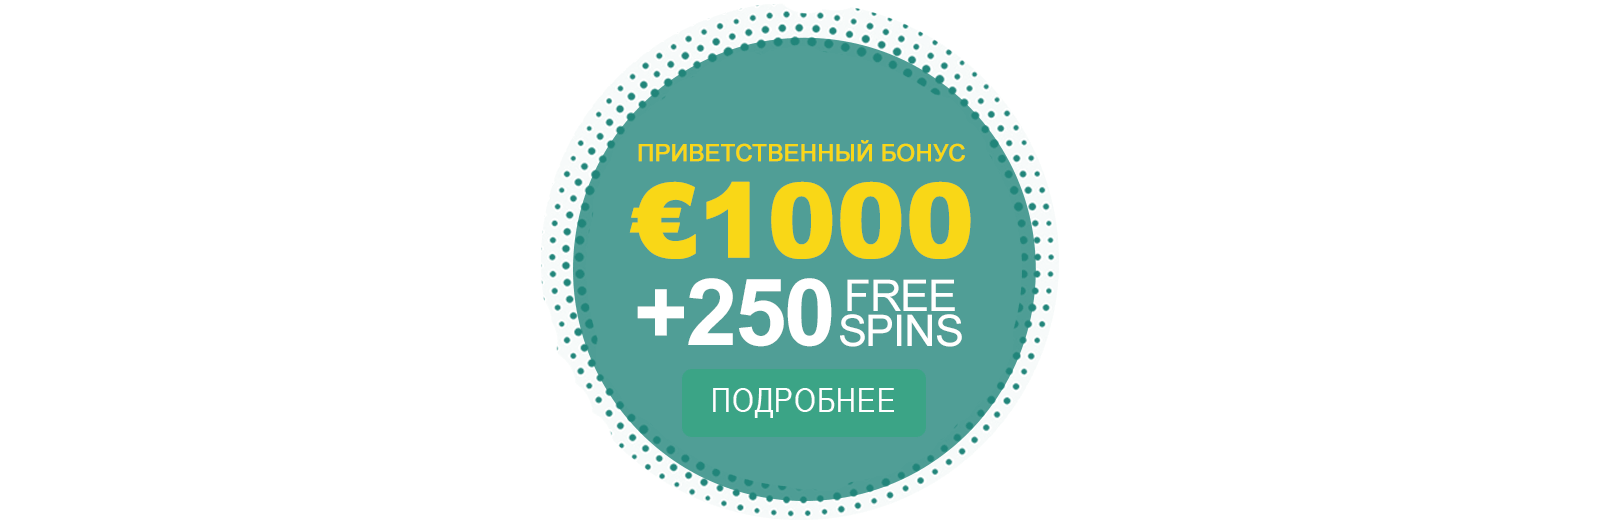 Blackjack рулетка